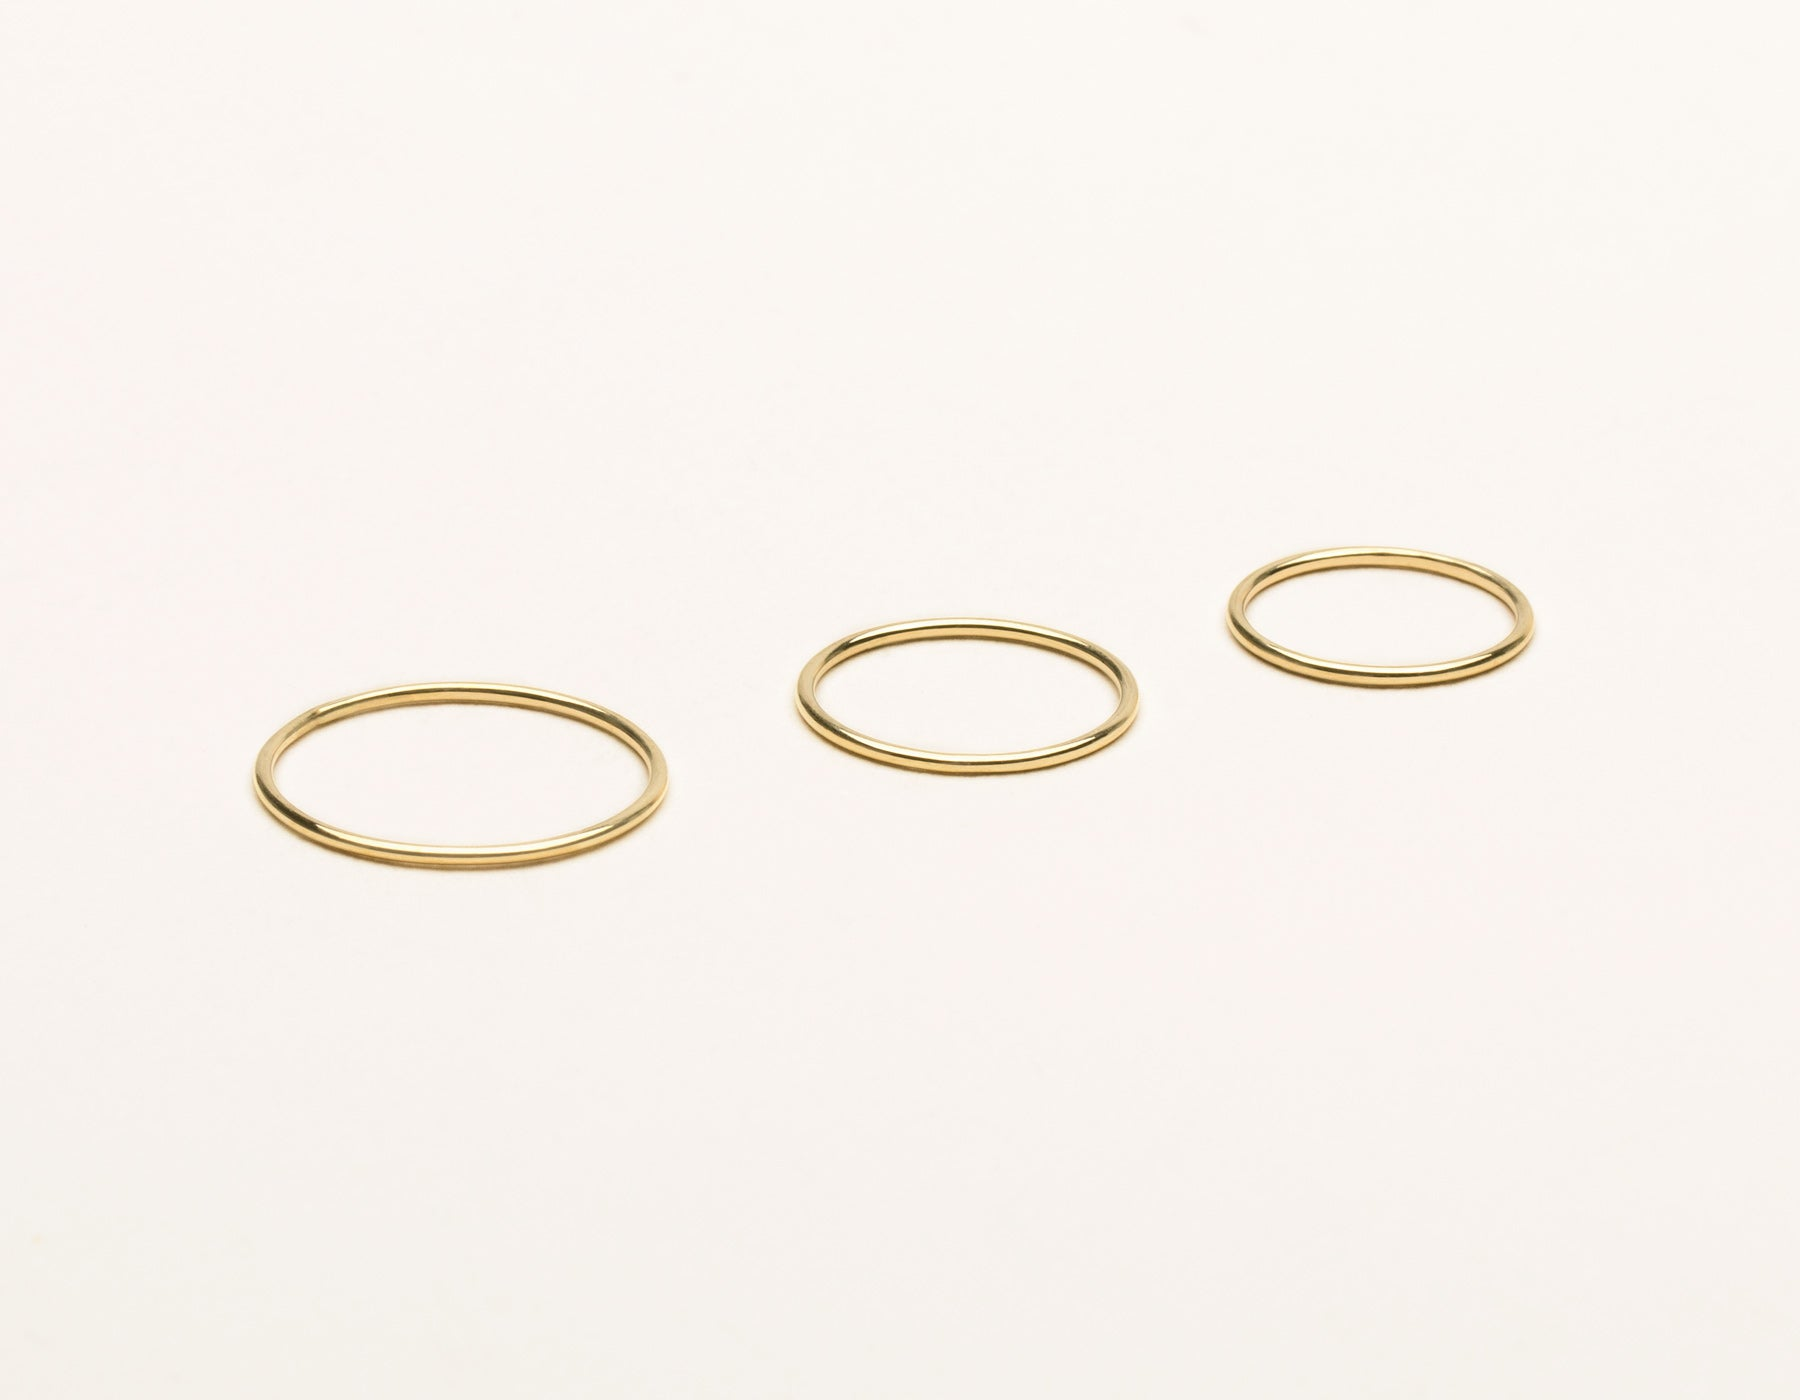 Skinny Stacker Ring Set 14k solid gold vrai & Oro plain round thin band, 14K Yellow Gold